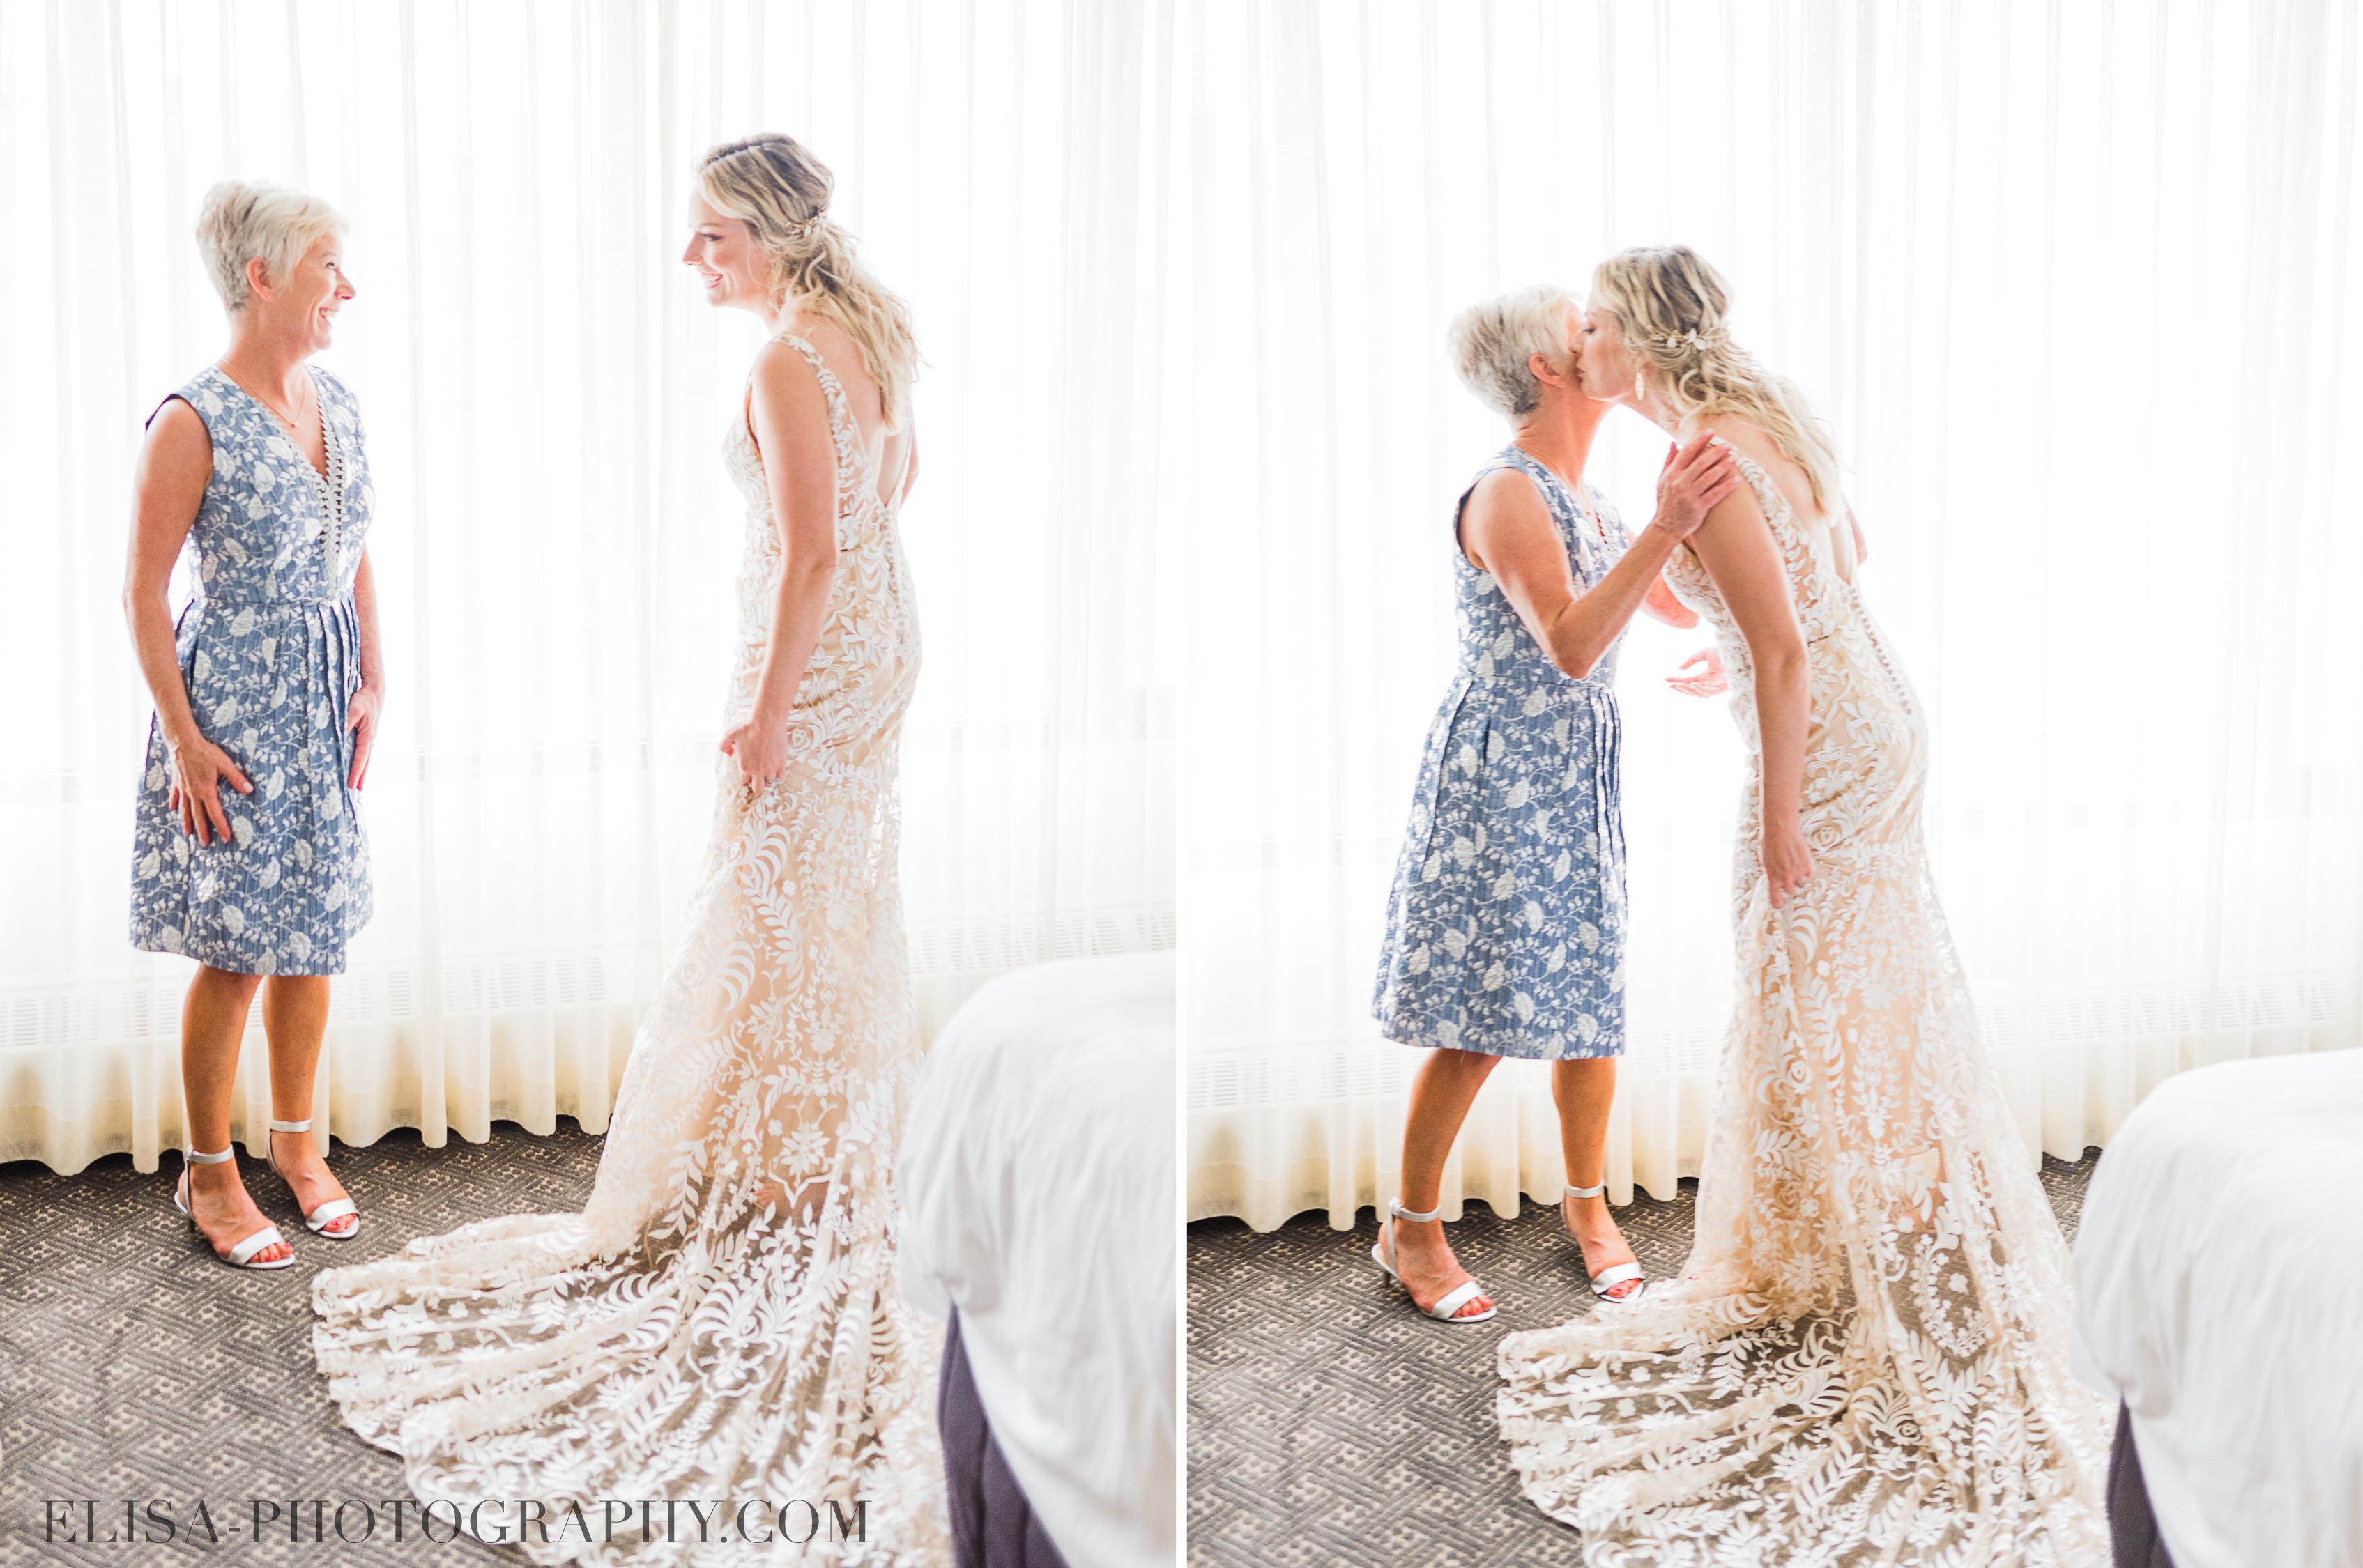 PHOTO mariage hotel omni montreal mere mariee mother bride elisa photographe - An elegant wedding under the marquee at the Forest and Stream Club in Montreal